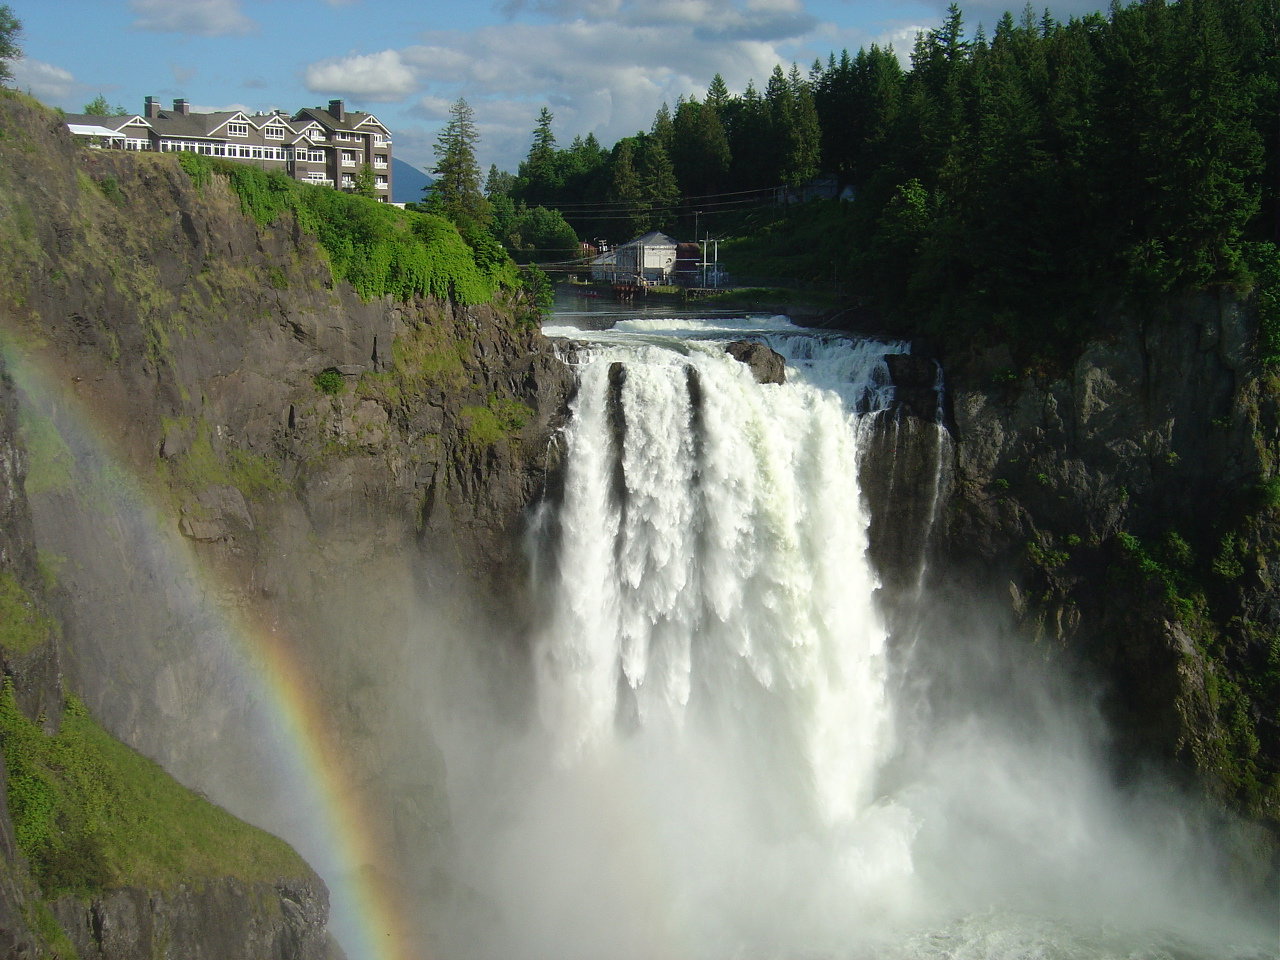 Snoqualmie_Falls_in_June_2008.JPG